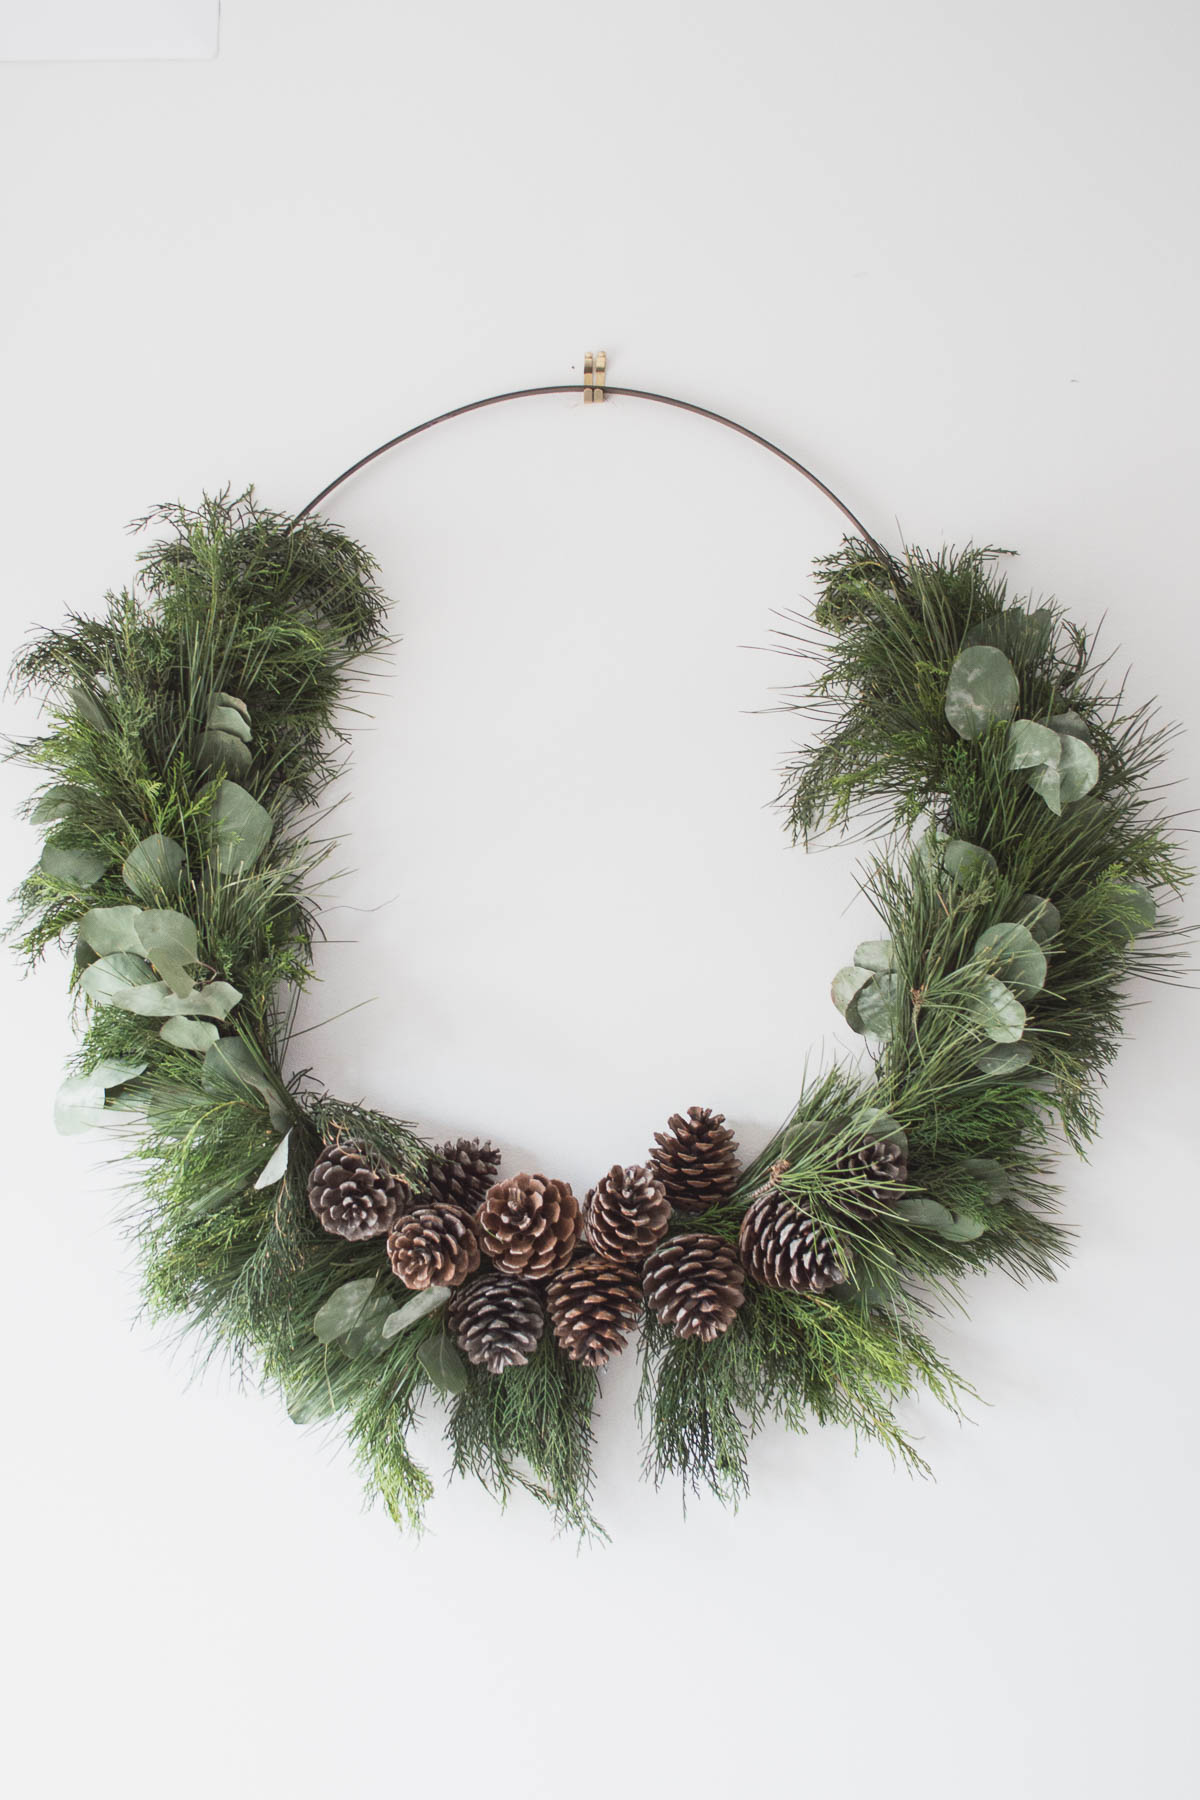 Let's explore this fabulous Collection of Perfect DIY Farmhouse Christmas Wreaths. Each one is unique, beautiful and has tons of Farmhouse Charm.